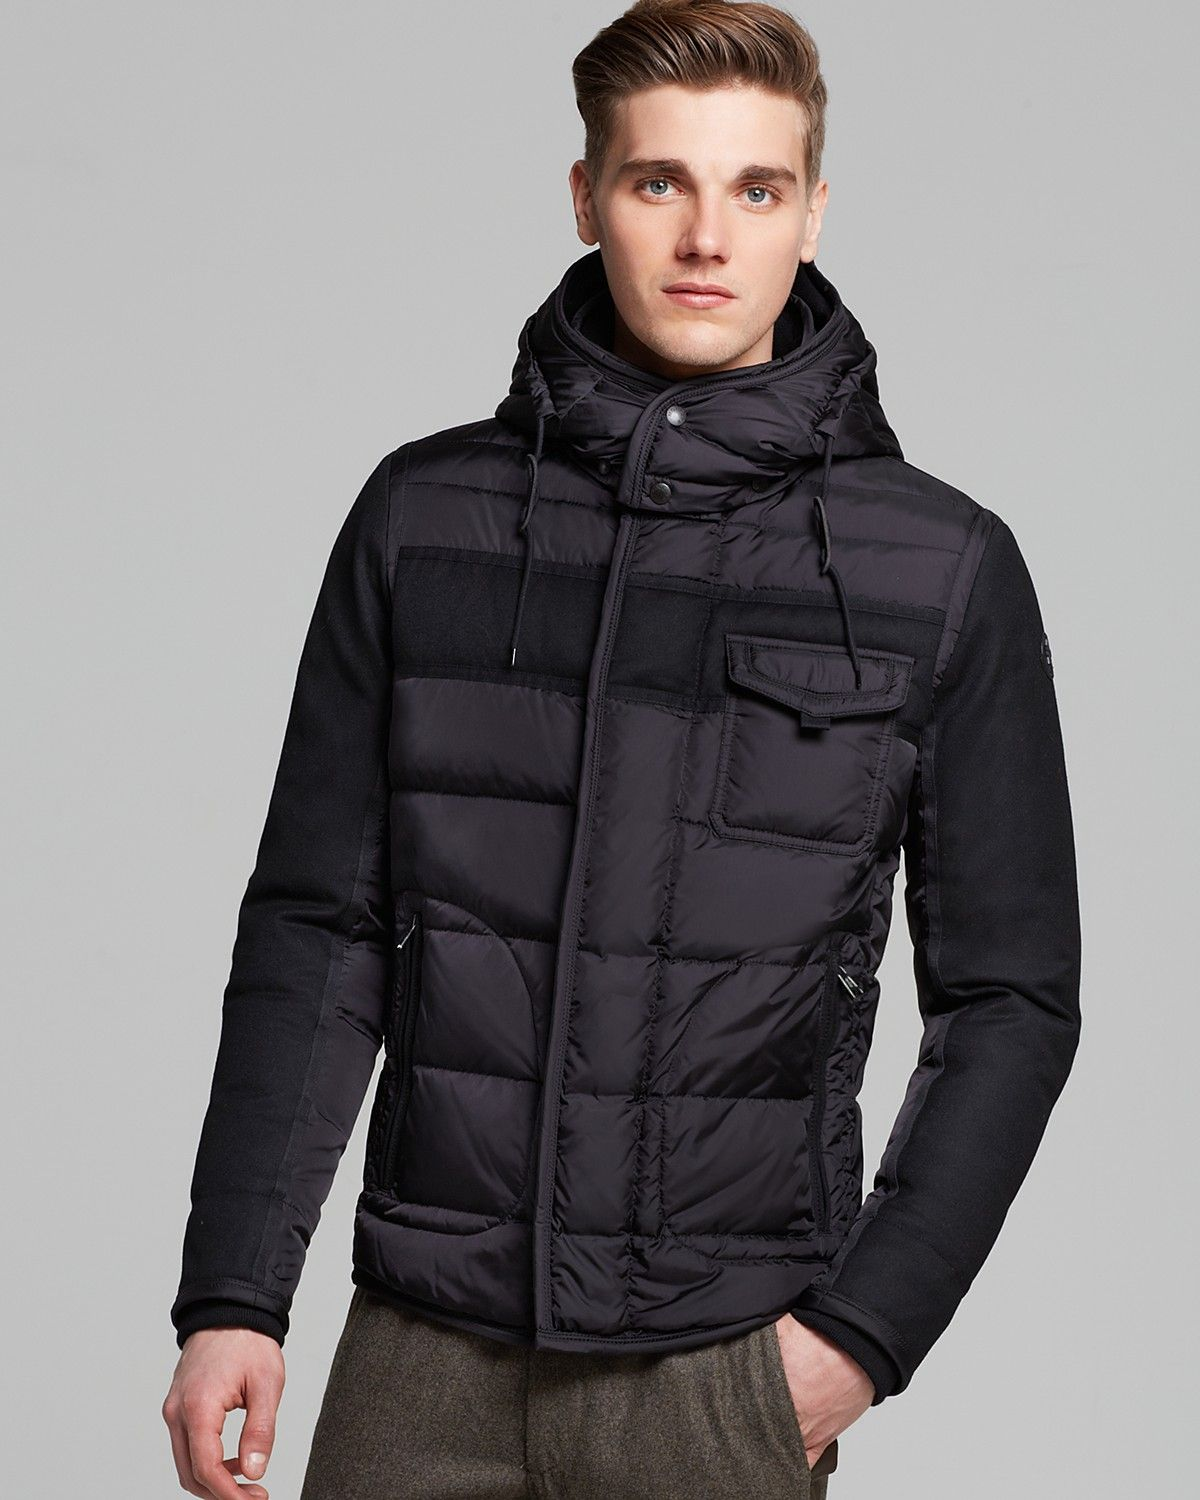 Moncler Ryan Hooded Down Jacket   Bloomingdale s. Moncler Ryan Hooded Down  Jacket   Bloomingdale s Cheap Winter Coats, ... d978b7006c0